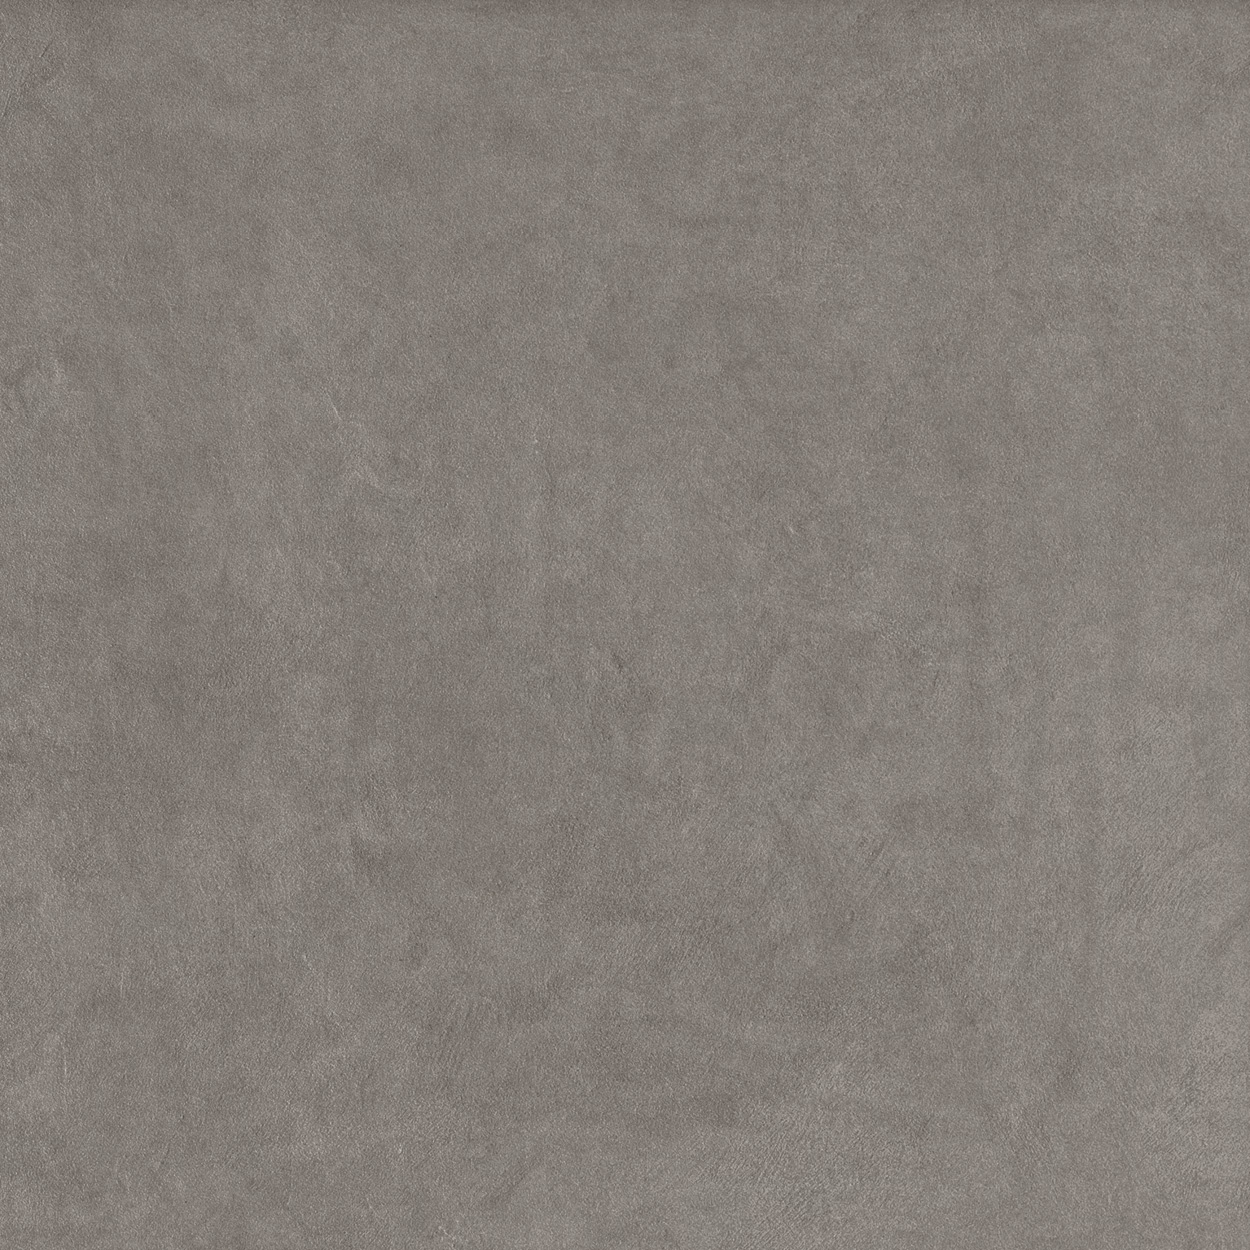 24 x 24 Seamless WR_03 Porcelain tile (SPECIAL ORDER ONLY)